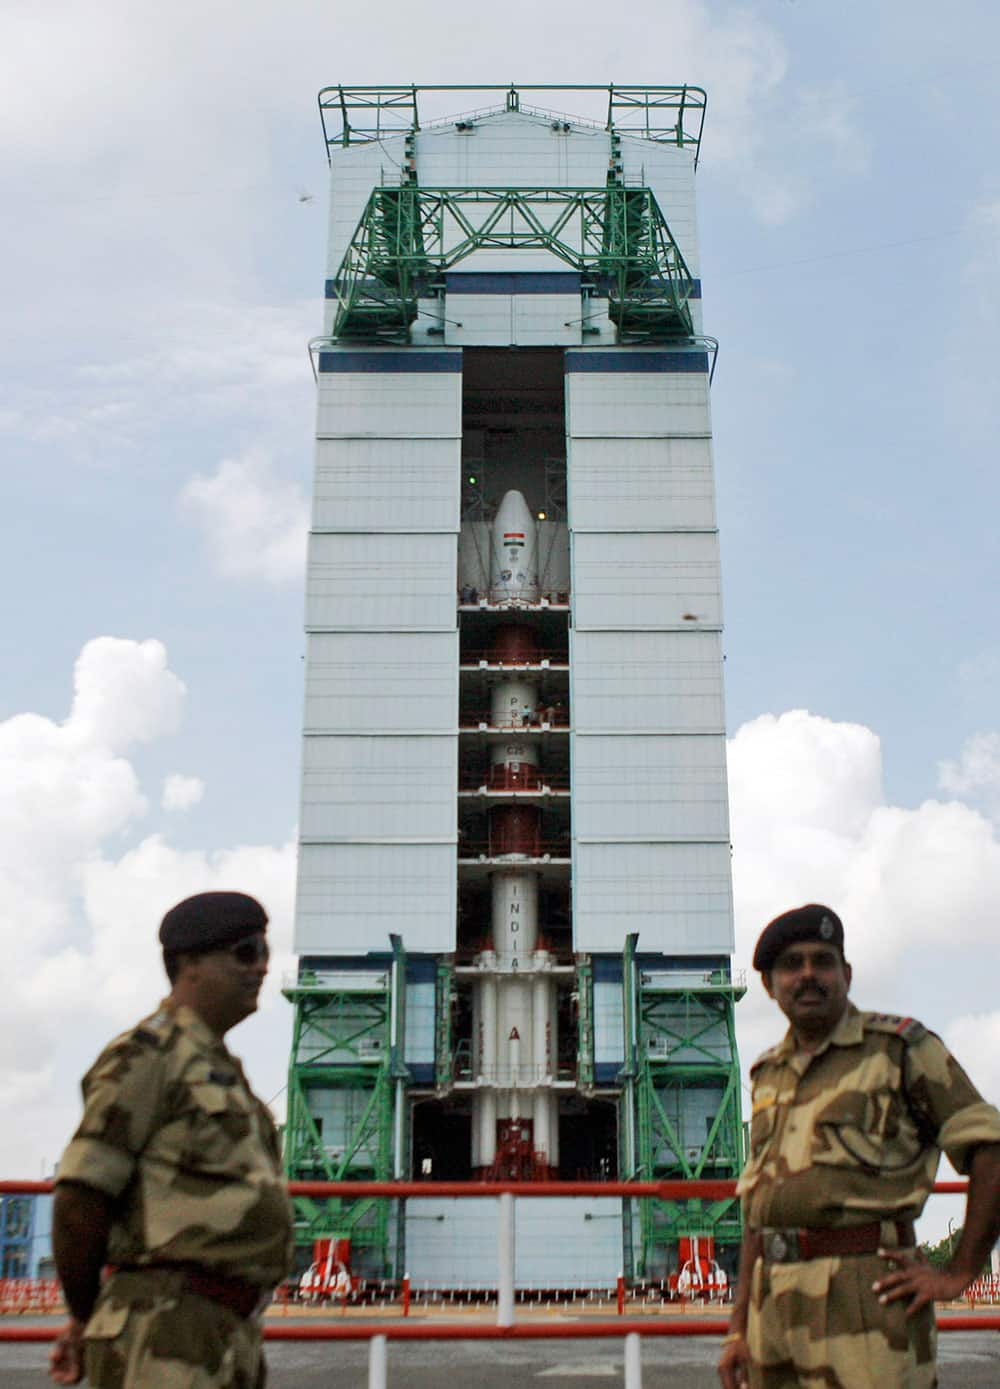 Paramilitary soldiers stand guard near the Polar Satellite Launch Vehicle (PSLV-C25) at the Satish Dhawan Space Center at Sriharikota, in the southern Indian state of Andhra Pradesh.